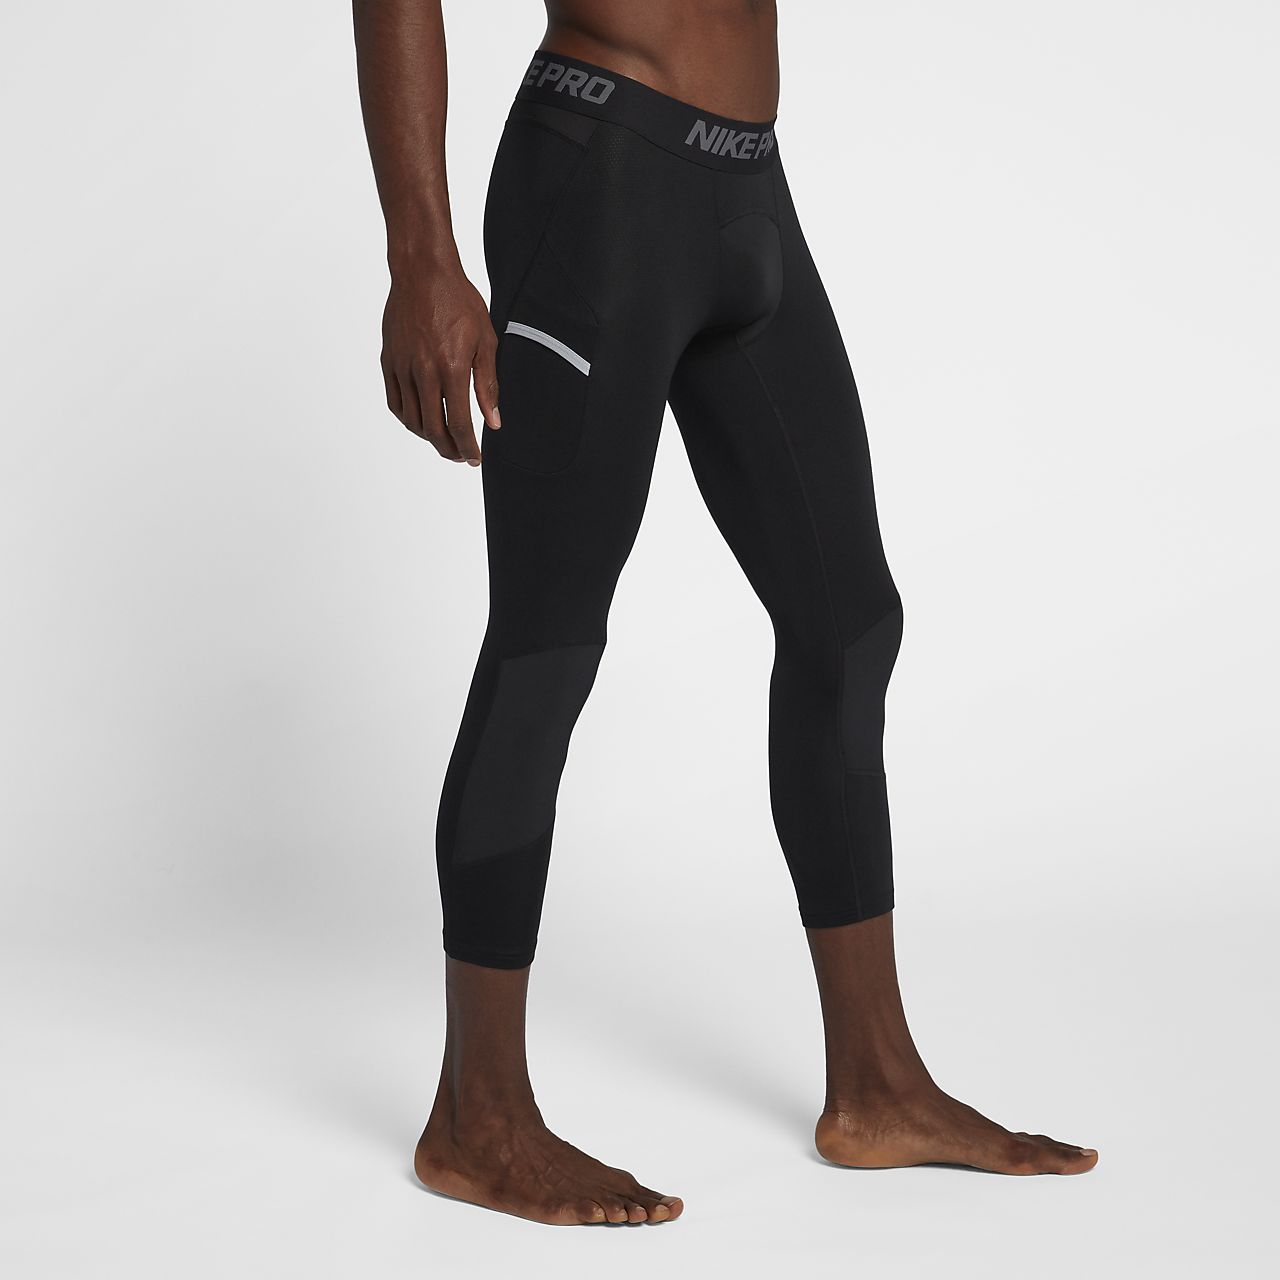 953d0f54ab57 New Nike Basketball Dri Fit Pro Compression Shorts Tights Mens Men s  Clothing